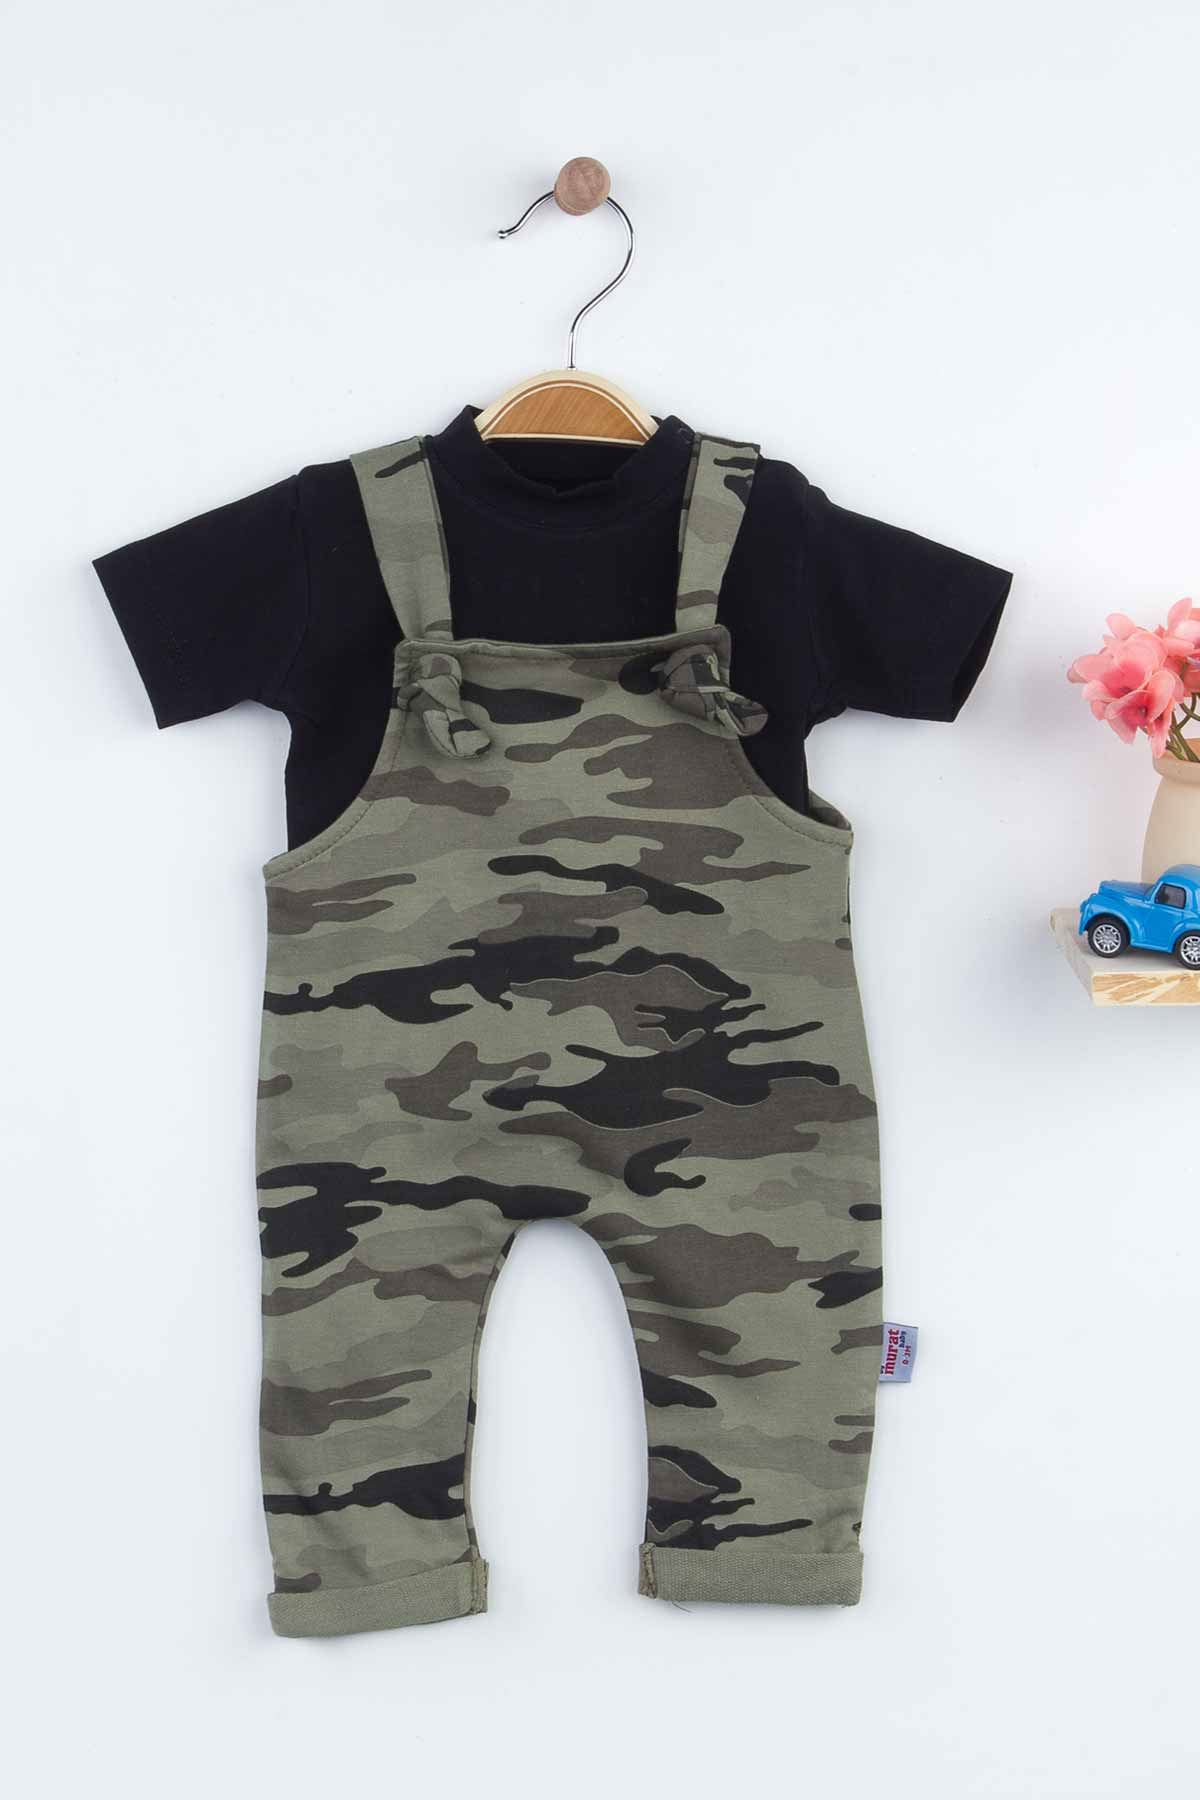 Khaki Camouflage Baby Boy Rompers Fashion 2021 New Season Style Babies Clothes Outfit Cotton Comfortable Underwear for Boys Baby